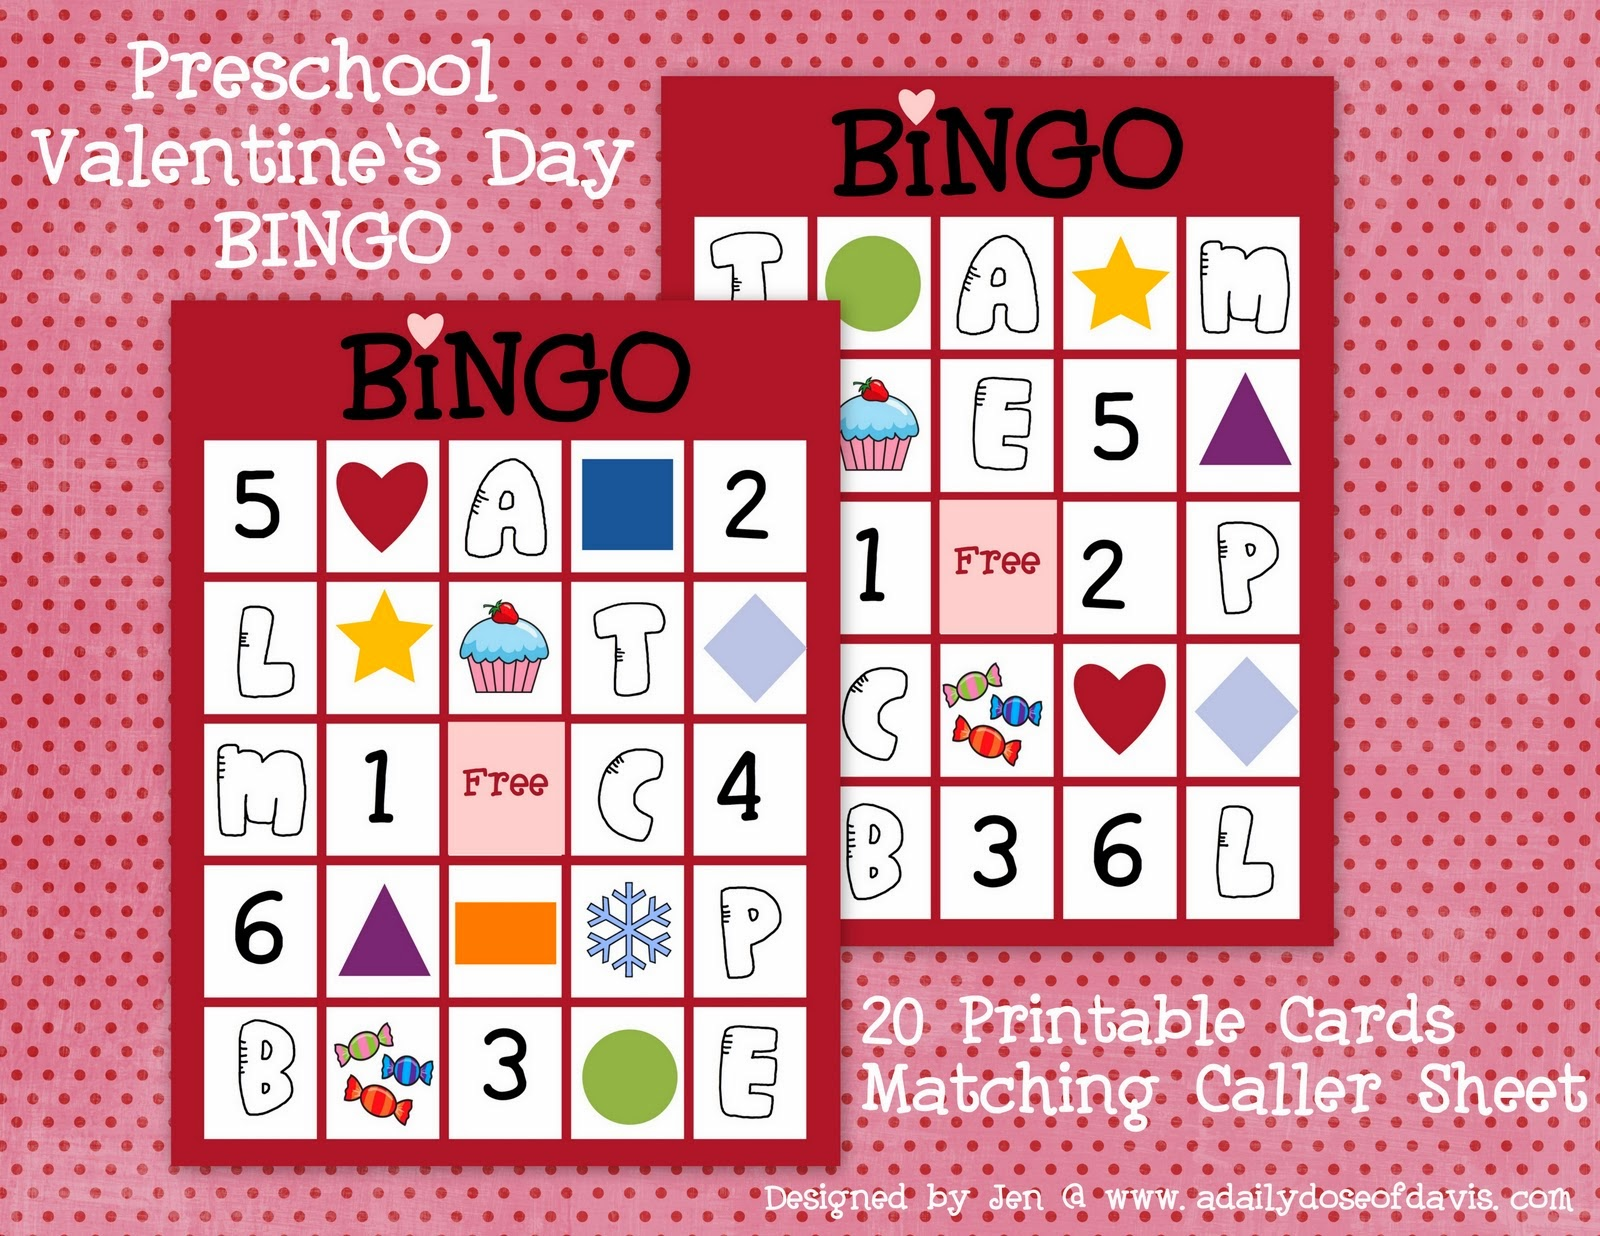 9 Images of Preschool Valentine Bingo Printable Game